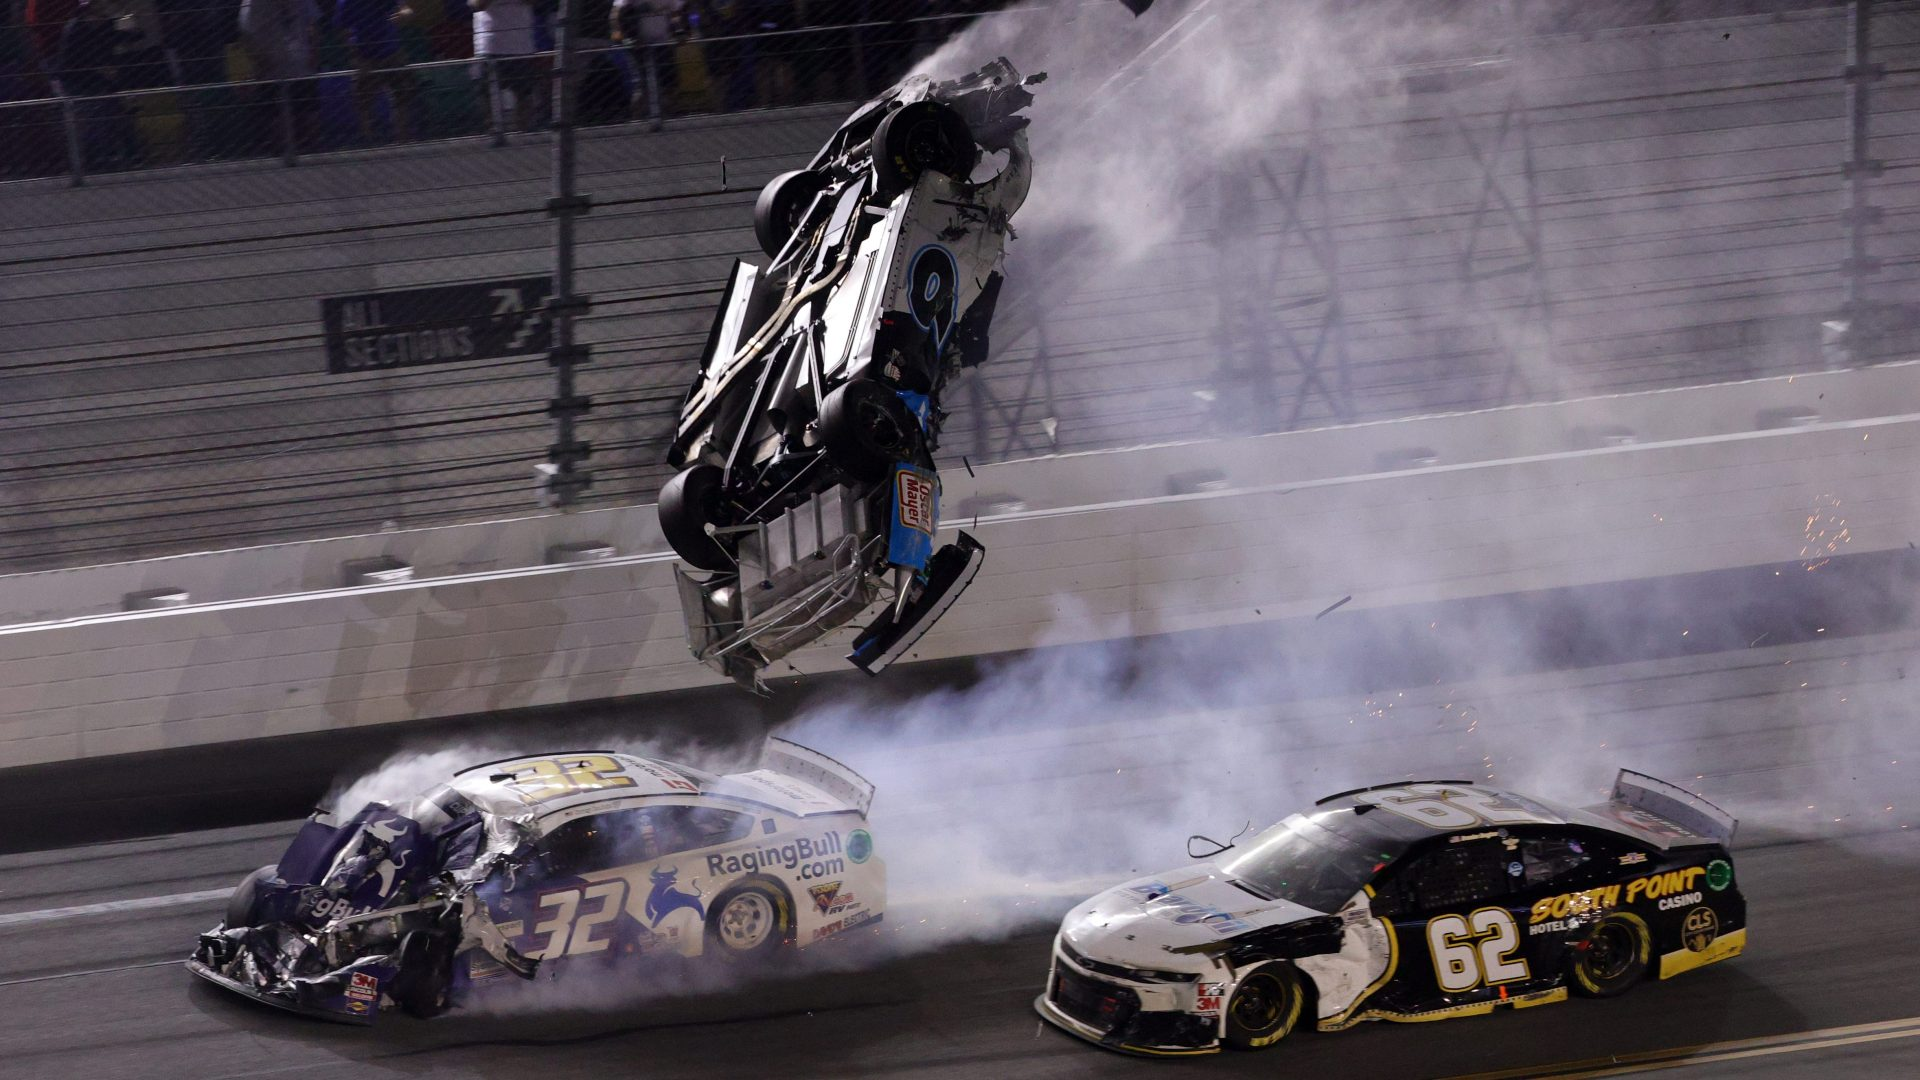 Ryan Newman, driver of the #6 Koch Industries Ford, flips over as he crashes during the NASCAR Cup Series 62nd Annual Daytona 500